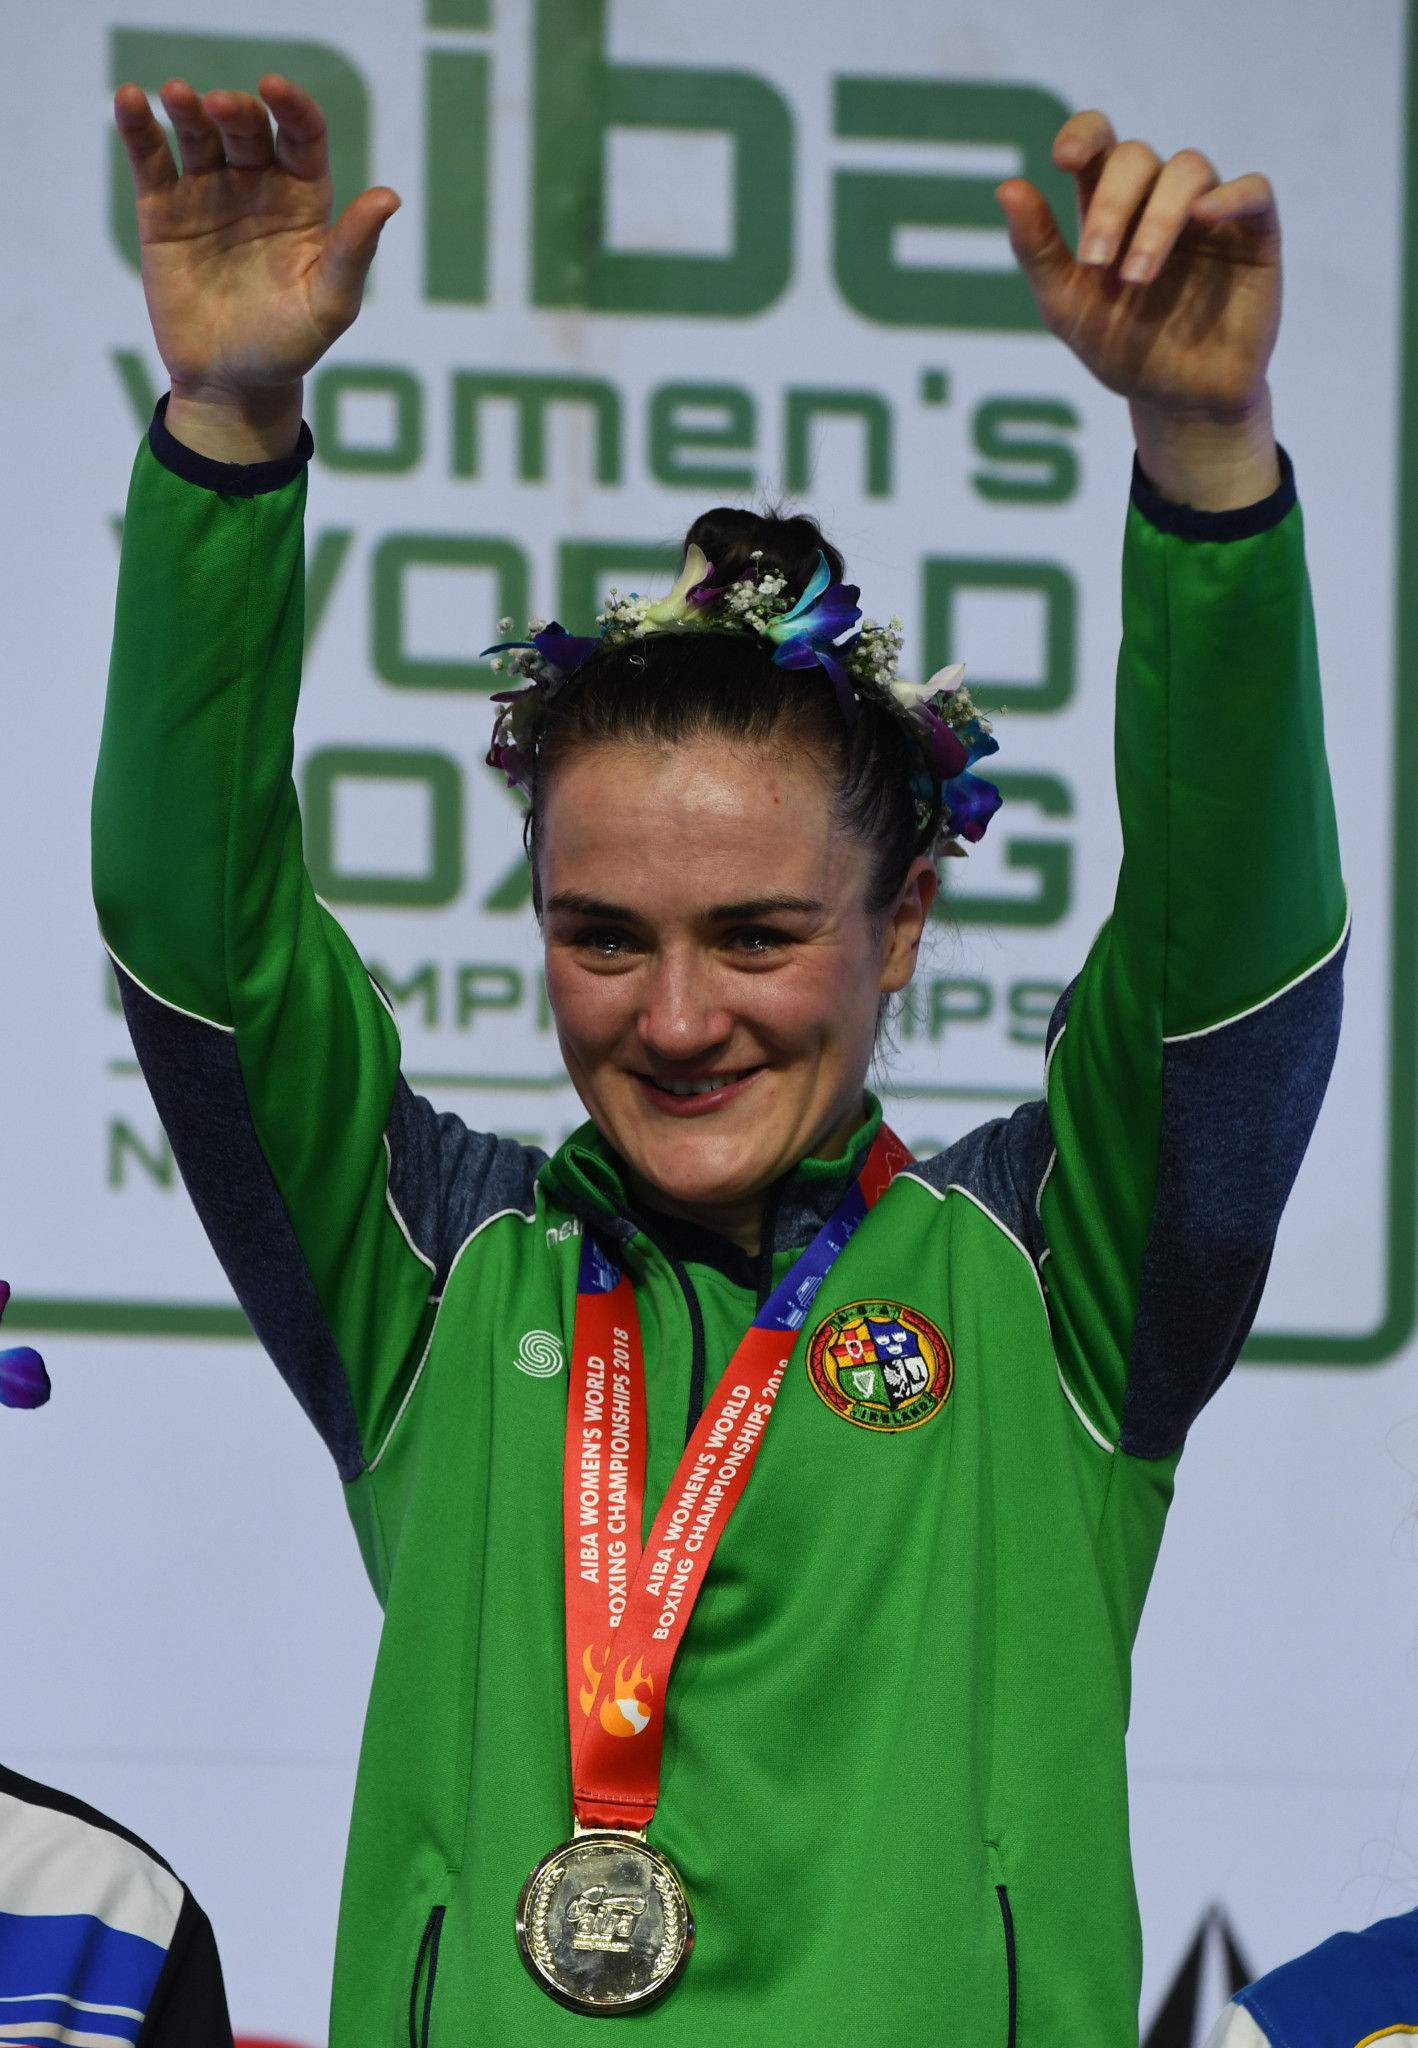 Former lightweight world champion Kellie Harrington had previously revealed concerns that Irish boxers were being left behind ©Getty Images